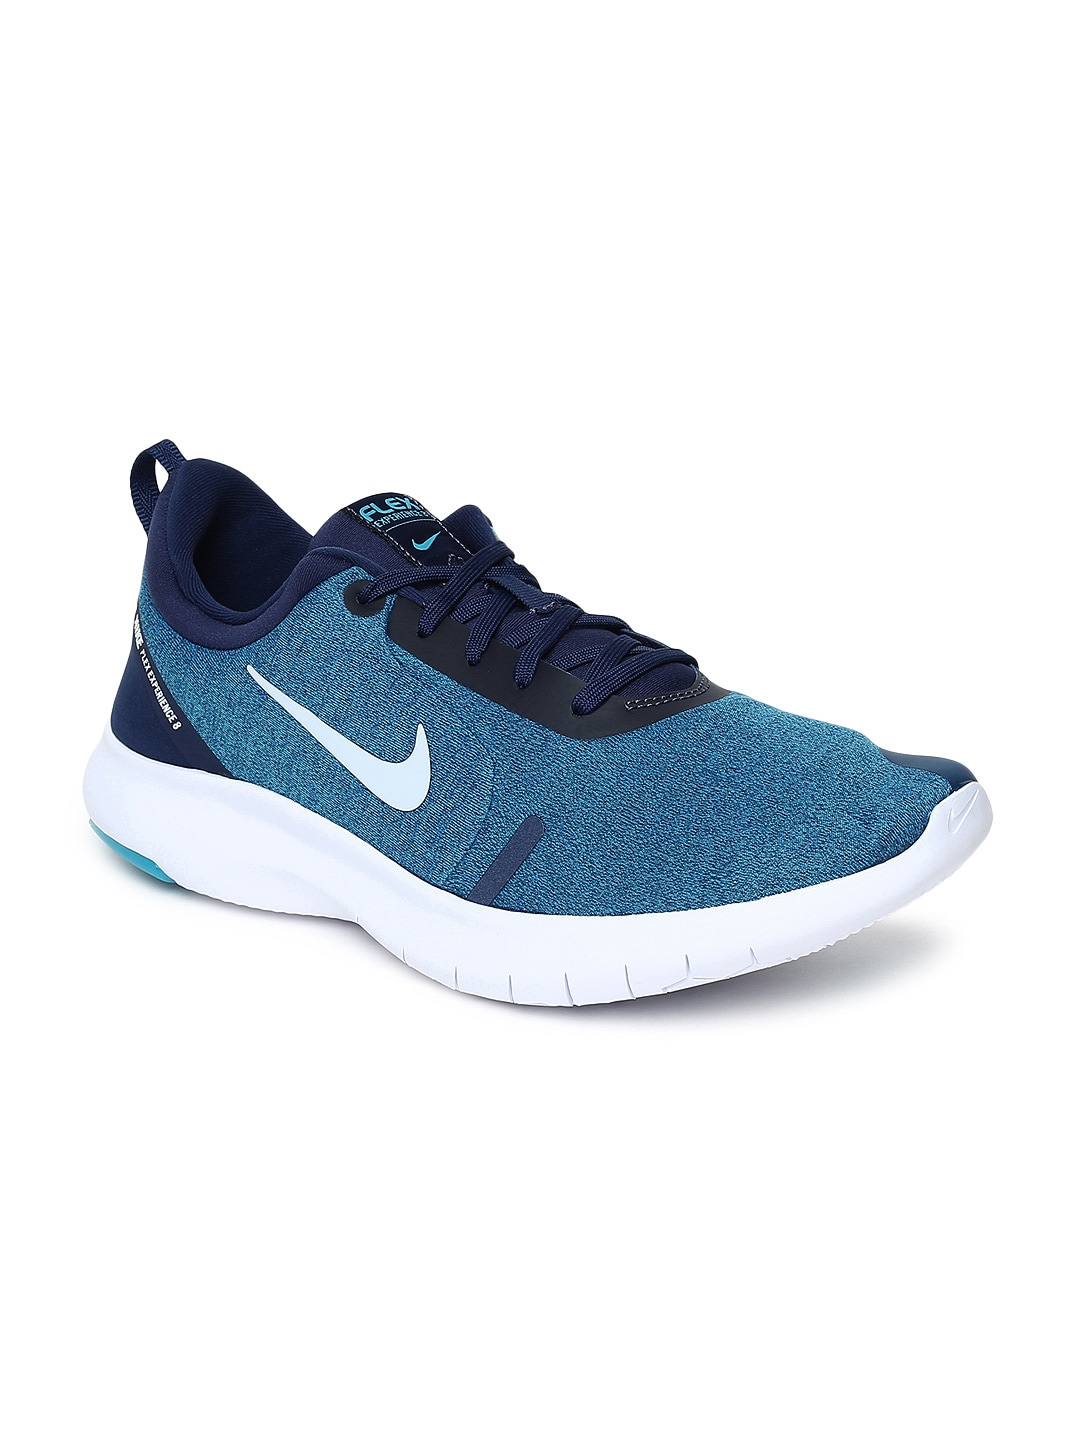 buy popular f8edd 3d135 Nike Running Shoes - Buy Nike Running Shoes Online   Myntra